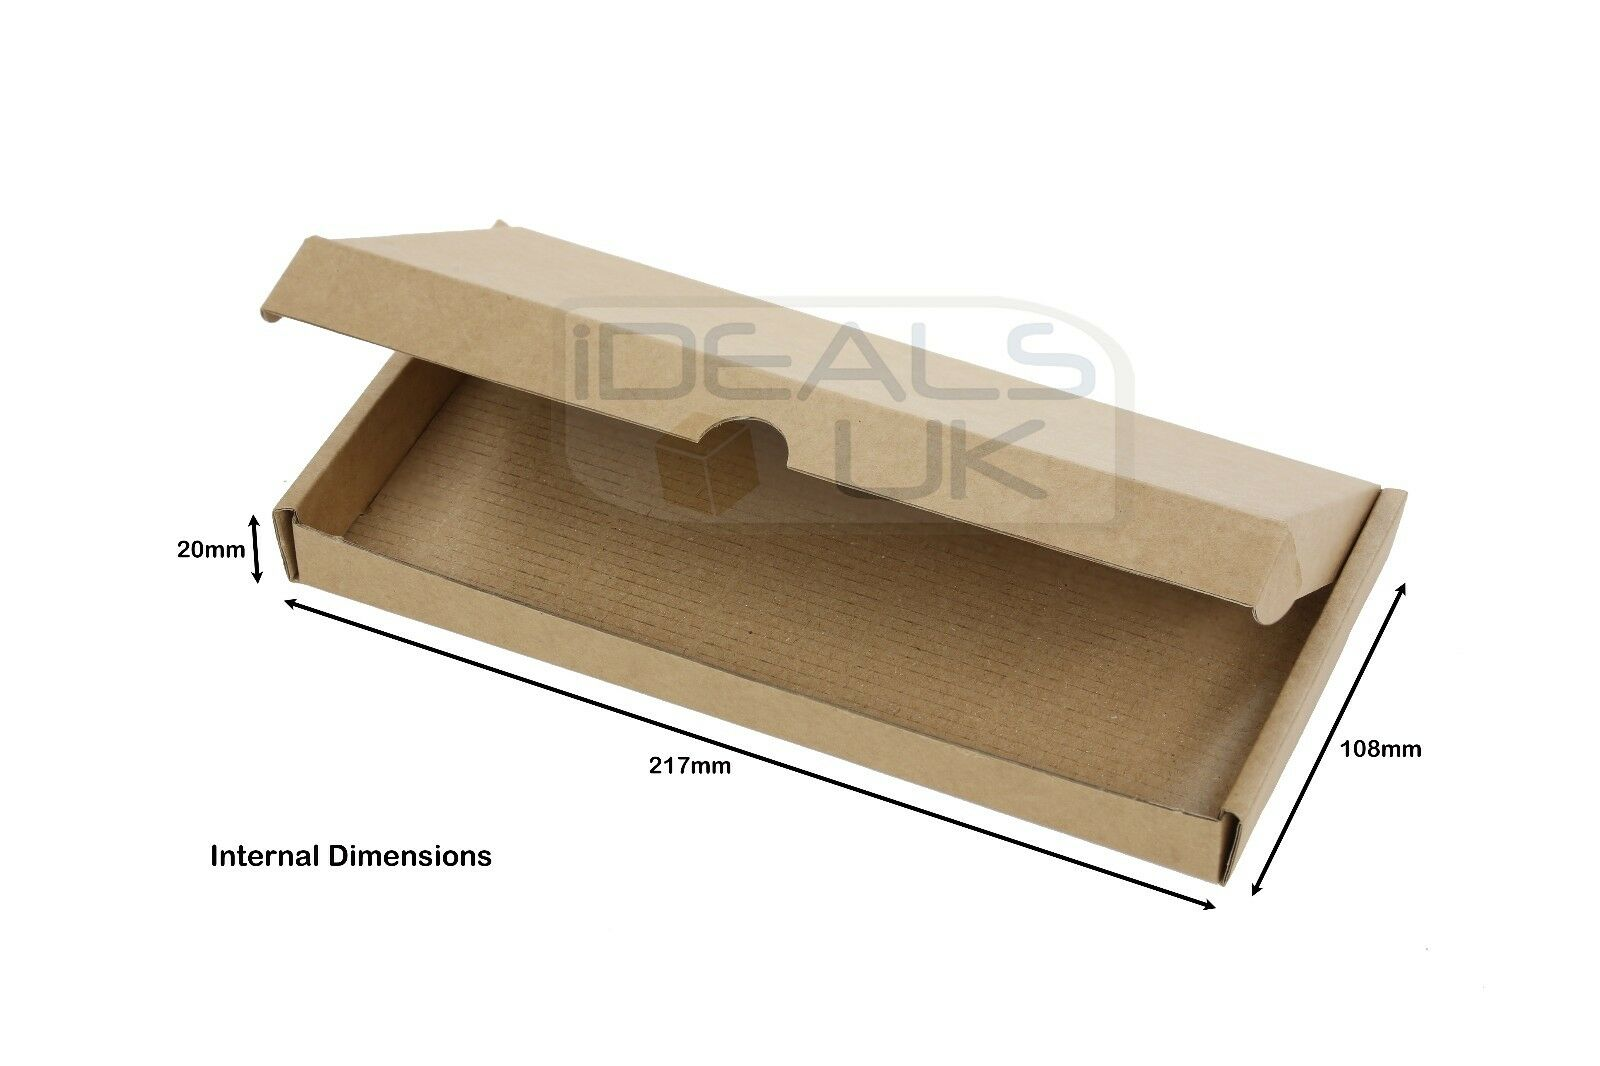 ROYAL MAIL LARGE LETTER DL SIZE STRONG CARDBOARD MAILING BOX - 217 x 108 x 20mm